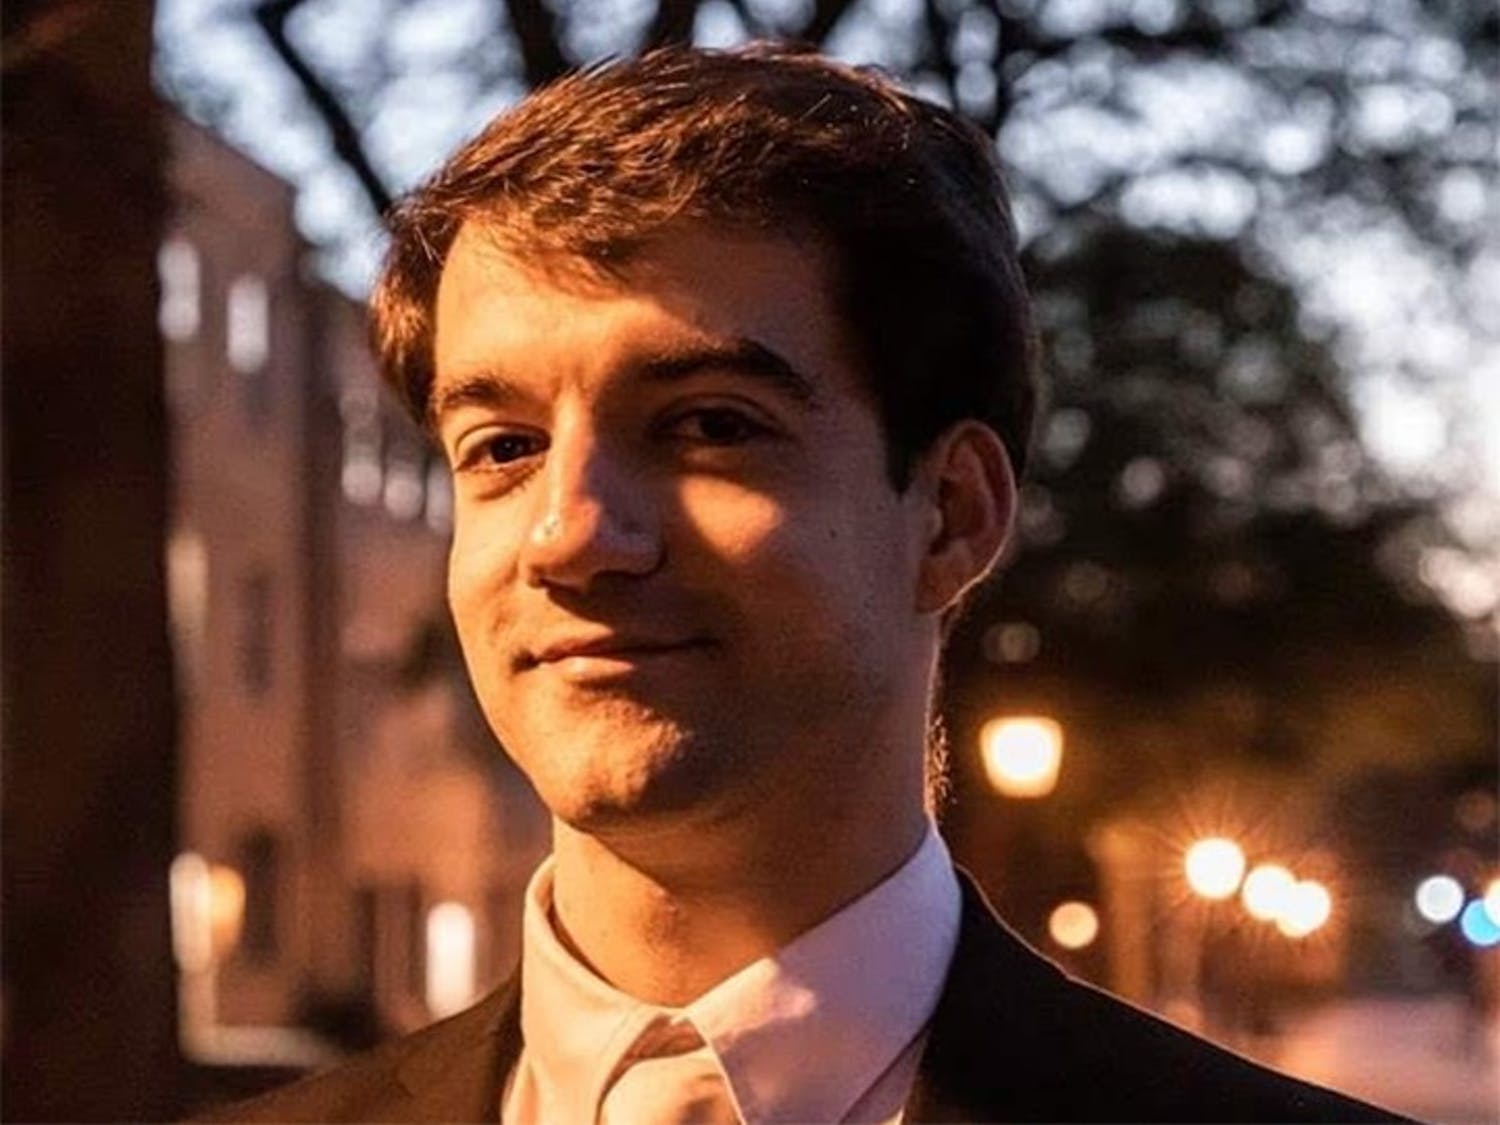 Yonie Penev, a pianist, works as a musical accompanist for the Department of Theatre and Dance at USC.